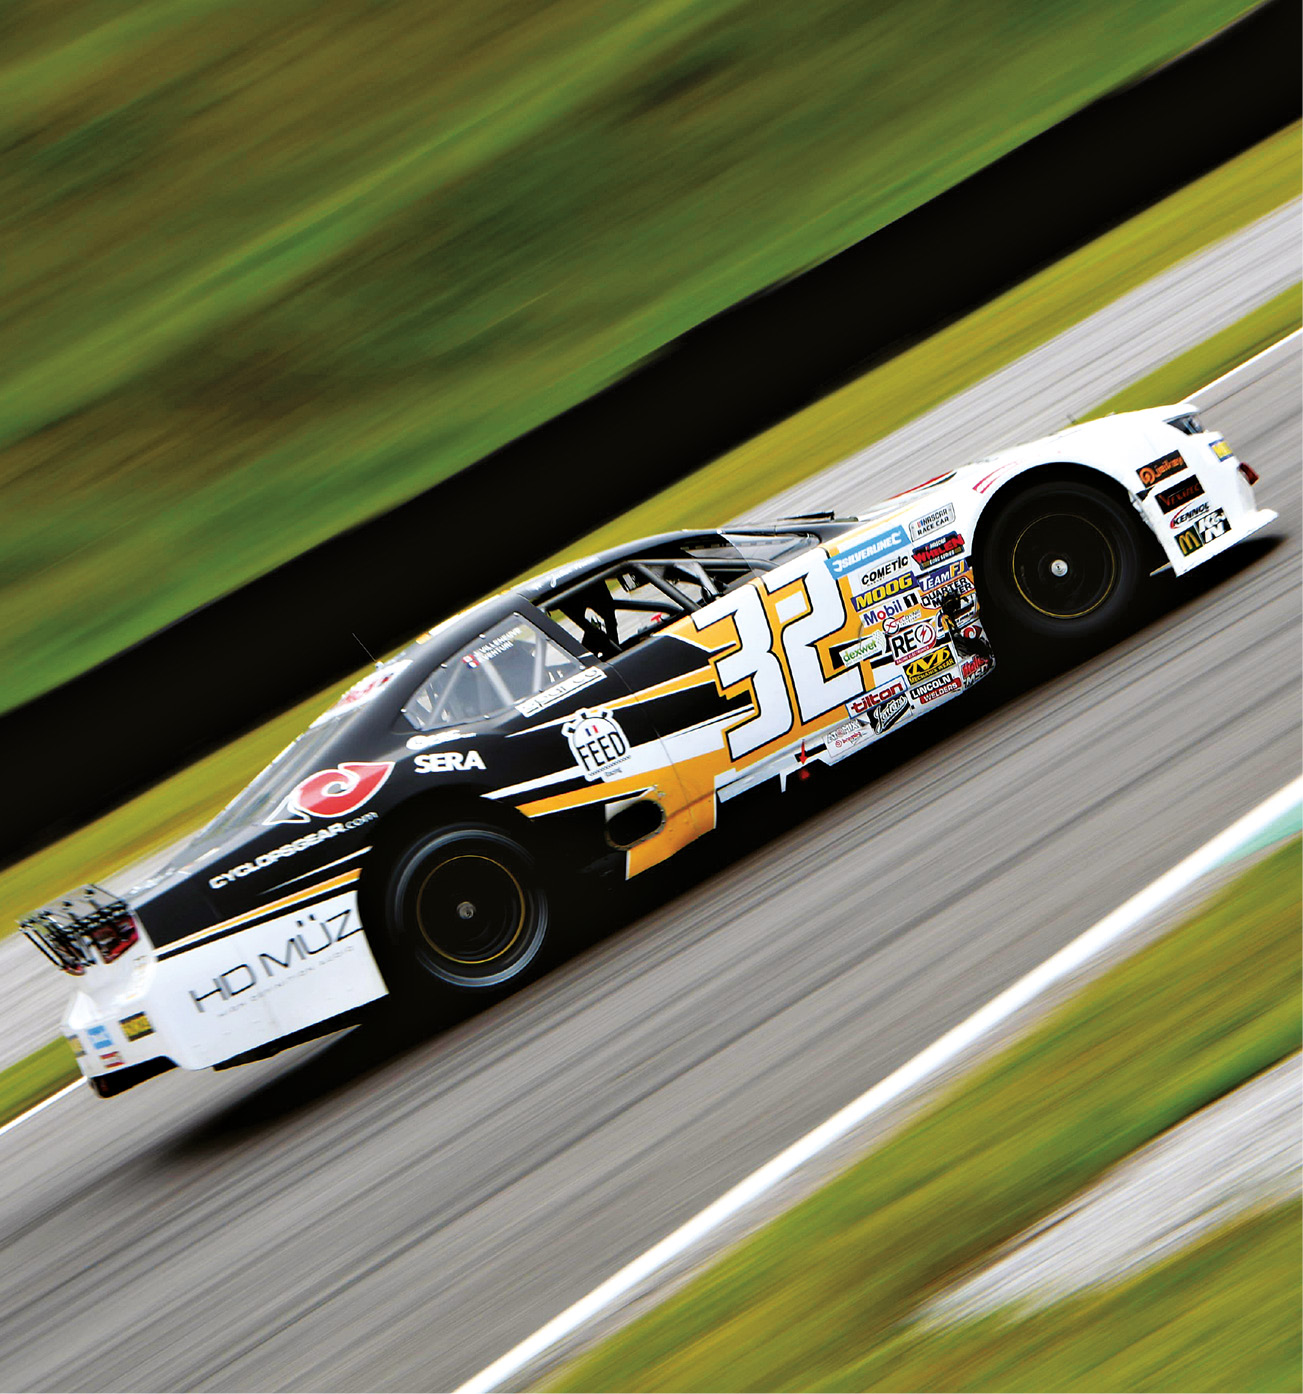 Despite differences between US and Euro NASCAR, there are spiritual similarities